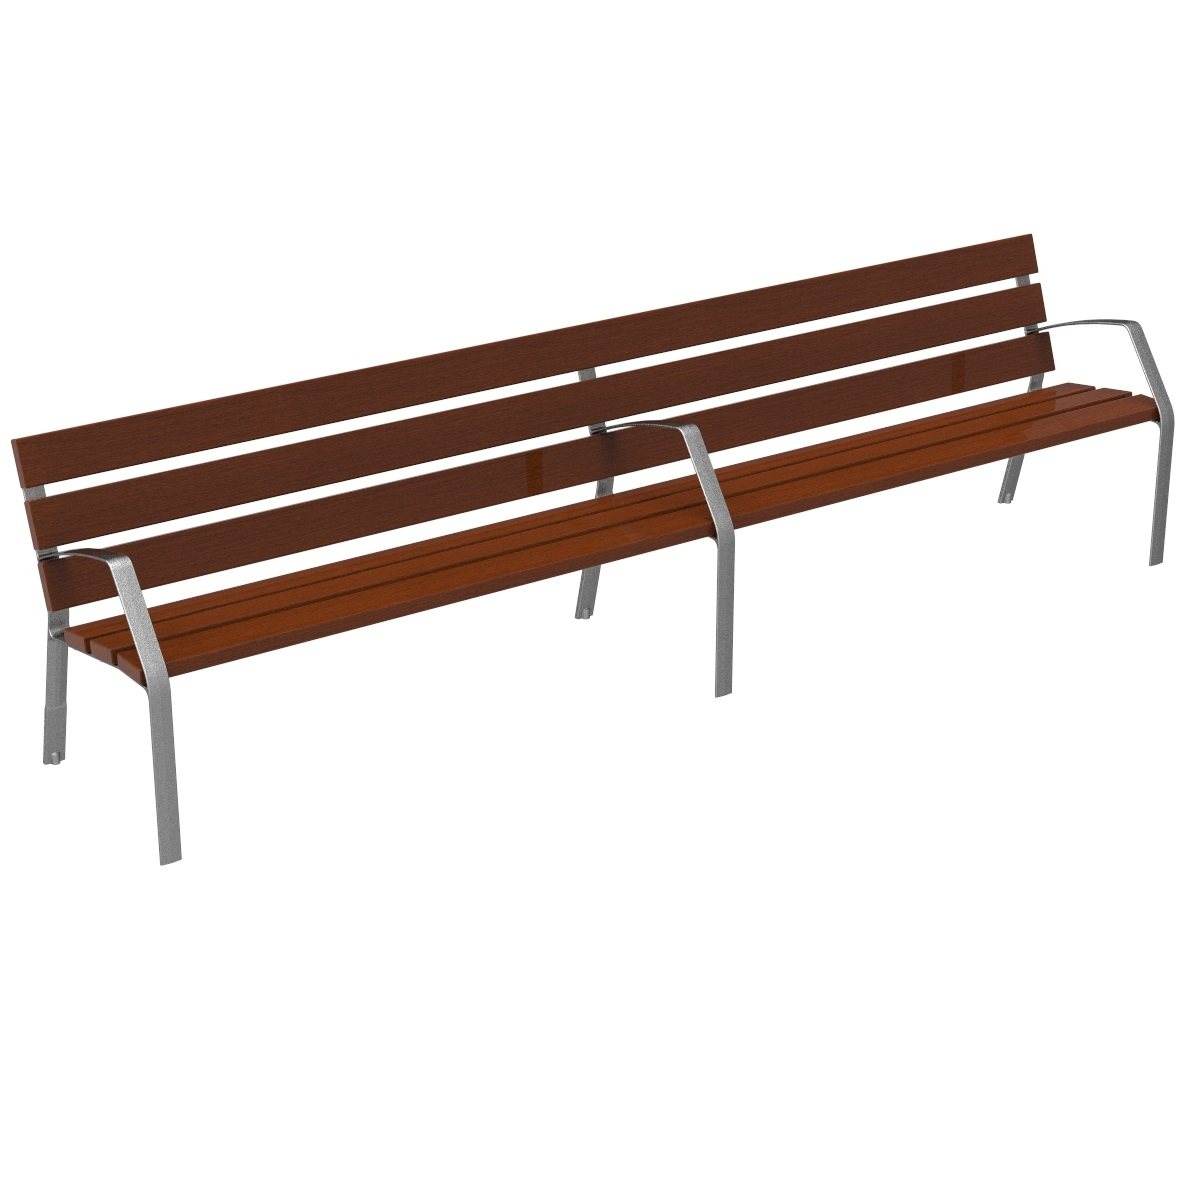 Bench Modo10 double tropical wood and ductile cast iron legs MODO08-3000